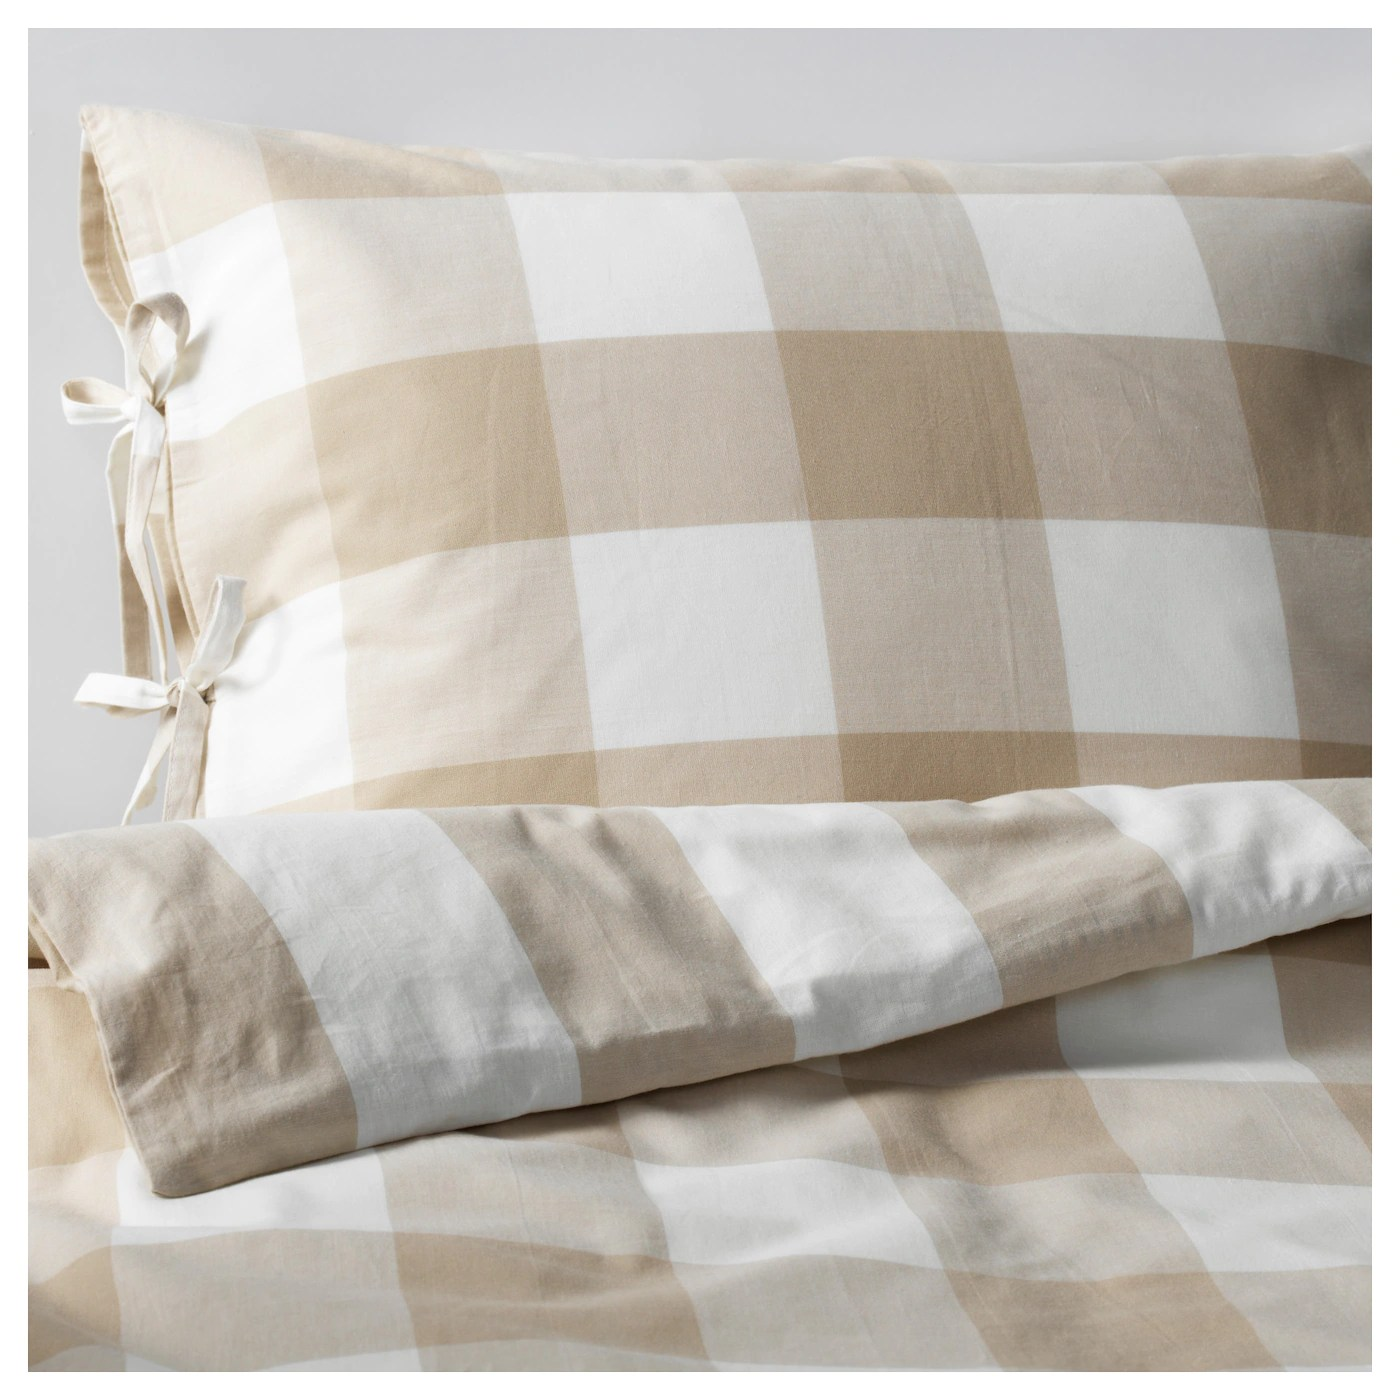 Ikea Doona Emmie Ruta Quilt Cover And 4 Pillowcases Beige White